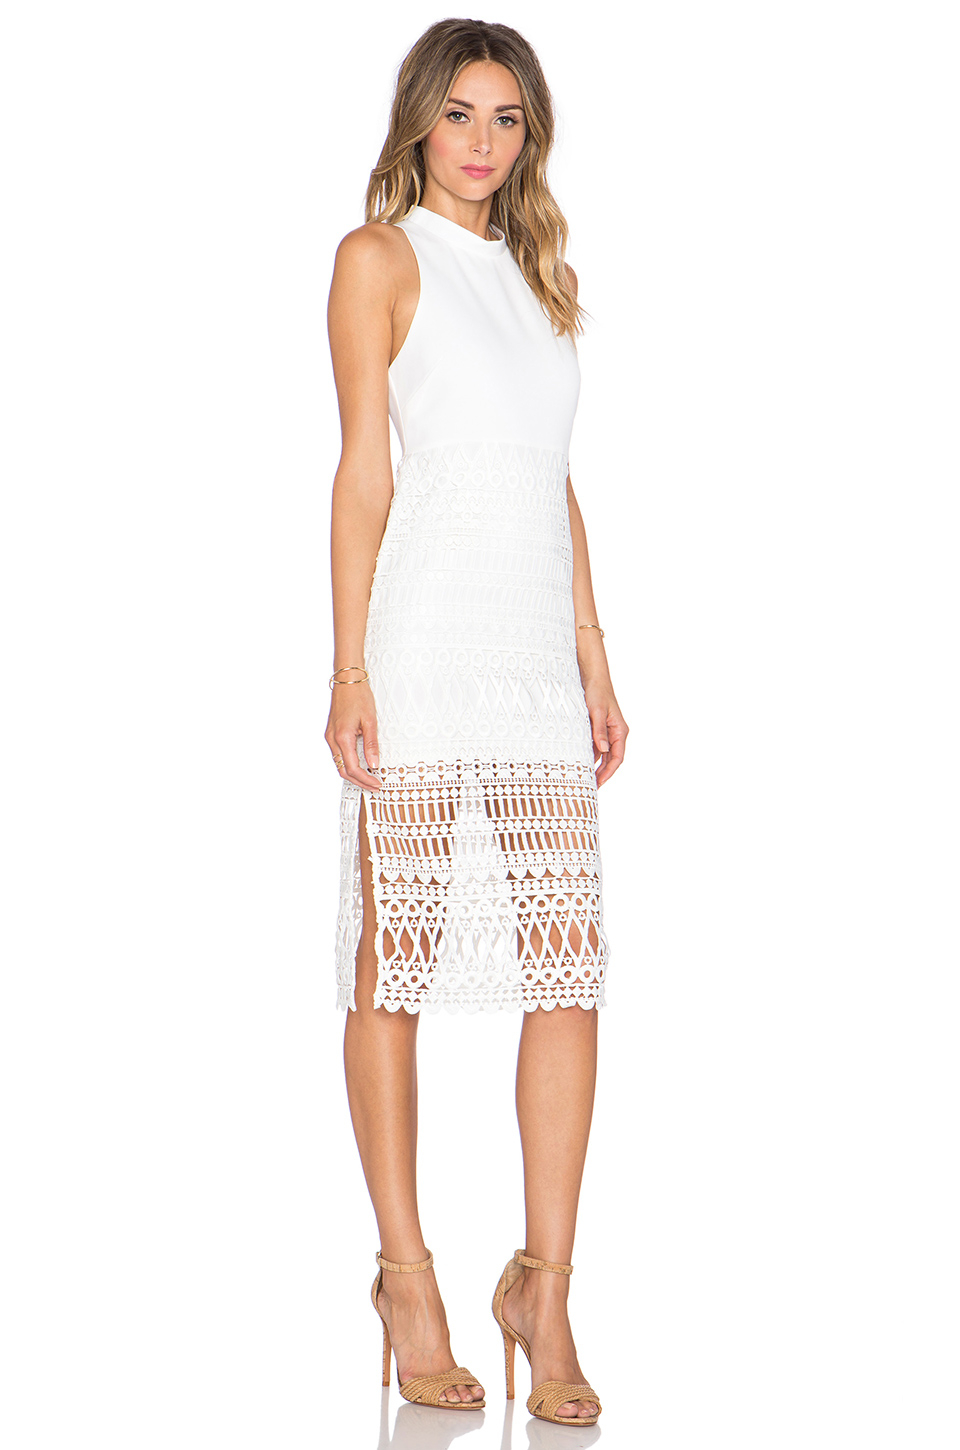 White dress crochet - Gallery Previously Sold At Revolve Women S Crochet Dresses Women S White Cocktail Dresses